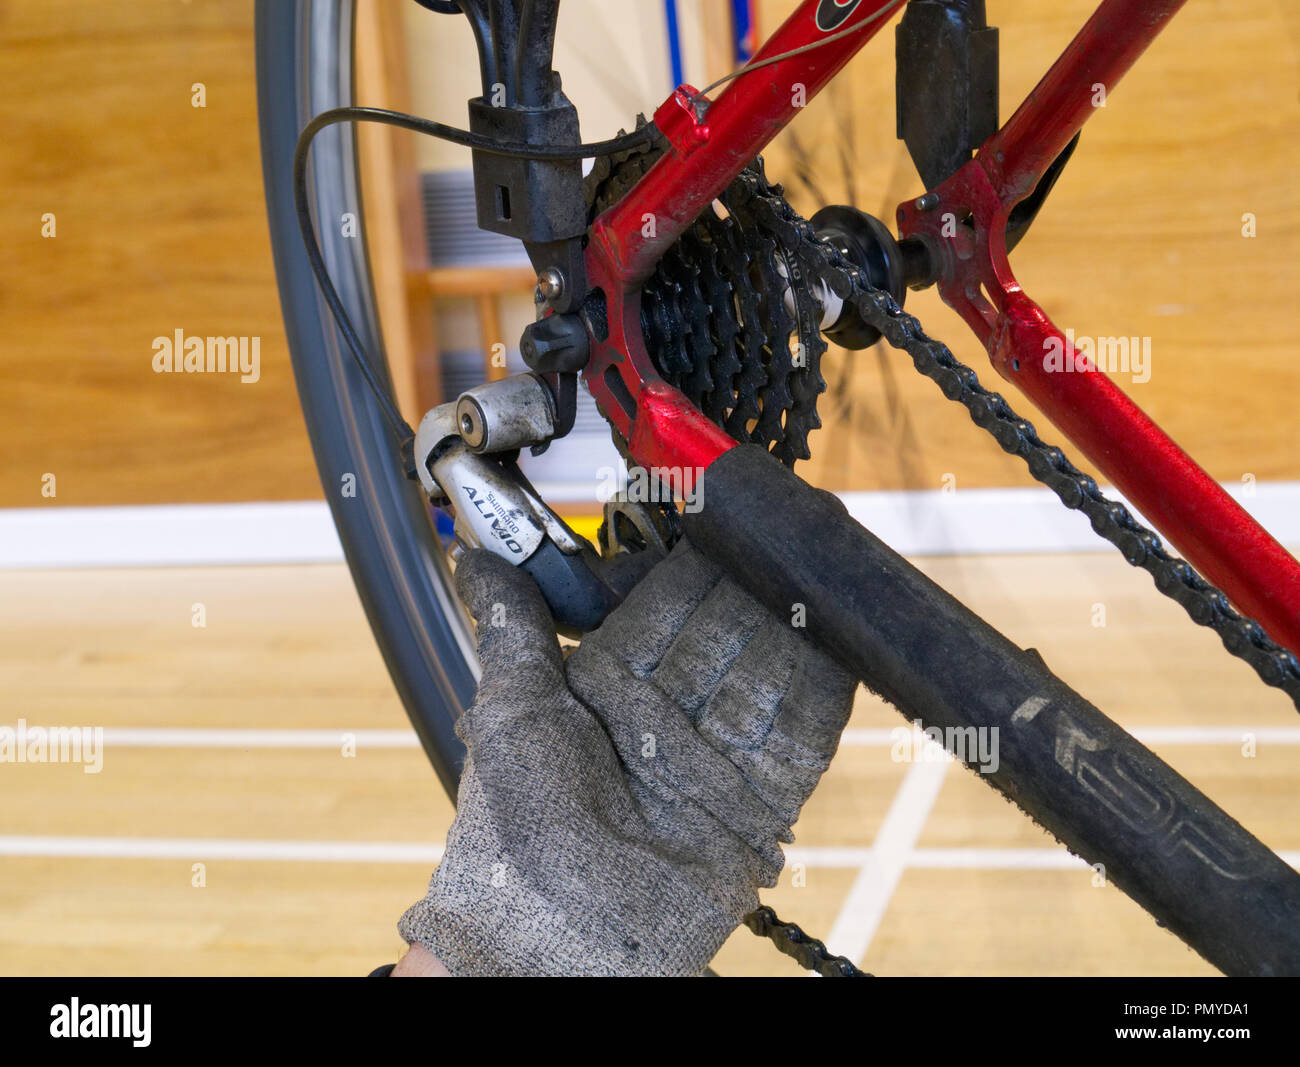 Mechanic servicing a rear derailleur - Stock Image